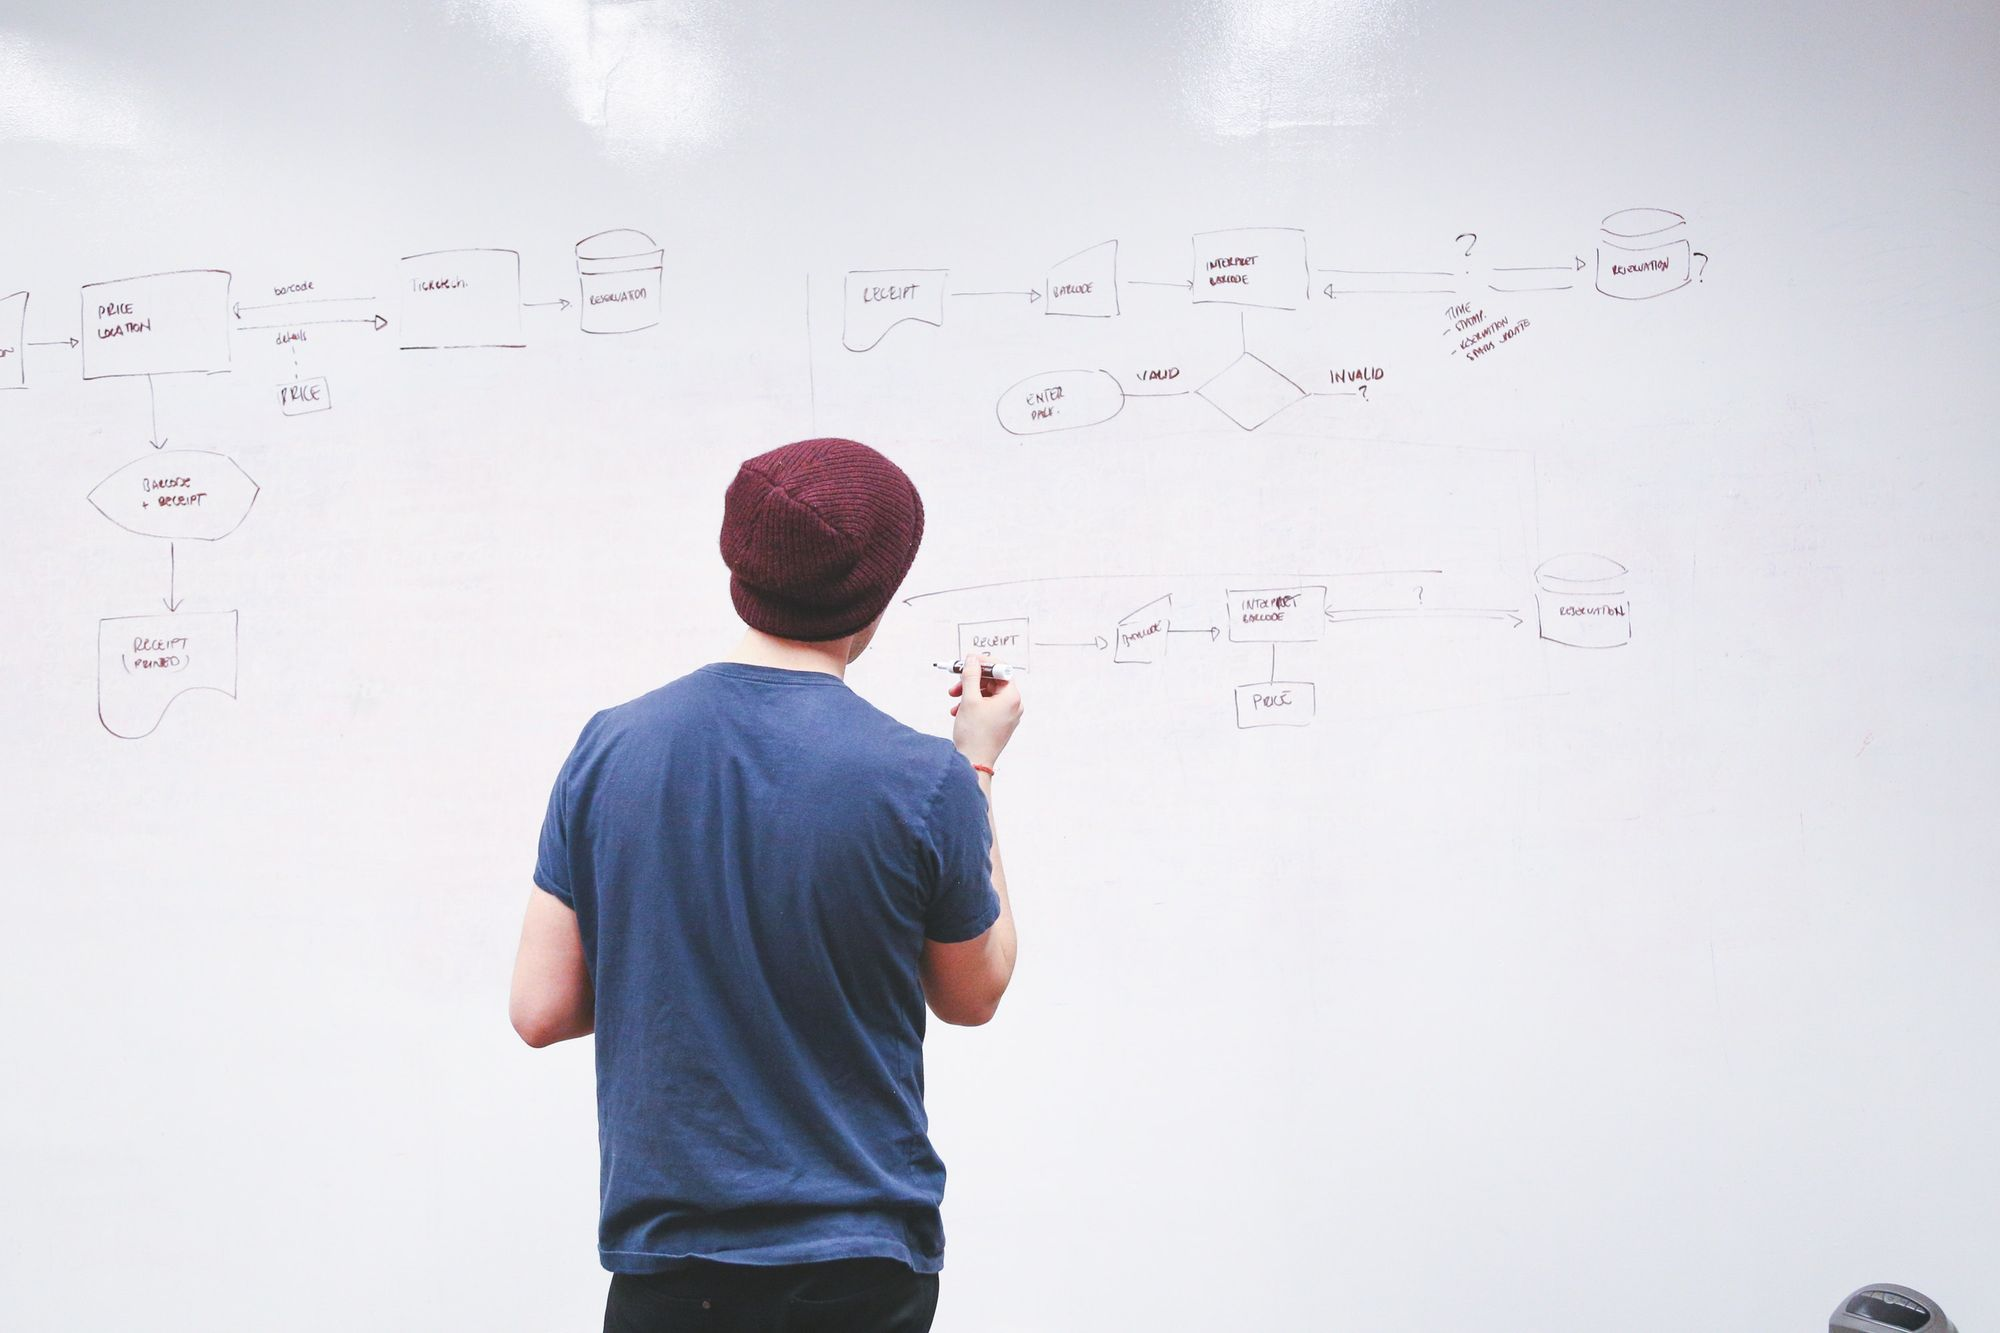 Man writing in a white board